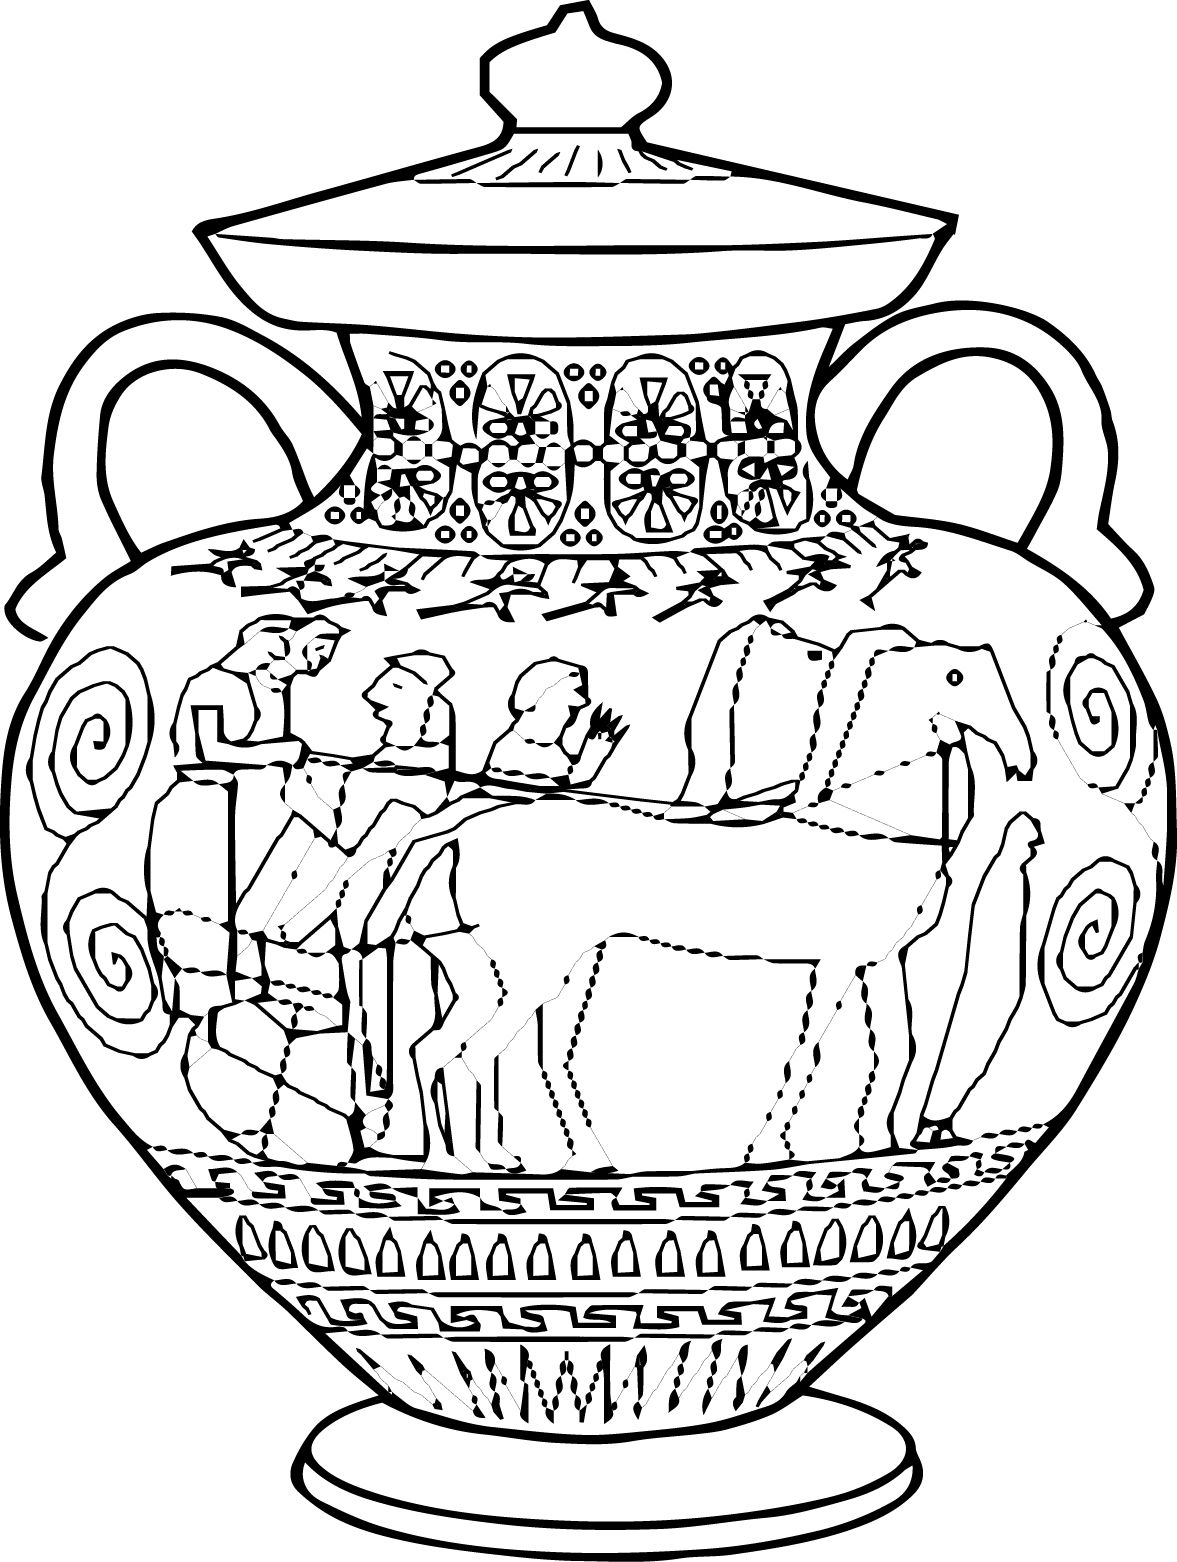 Amphora Ancient Greece Coloring Pages Jpg 1177 1562 Arte Grega